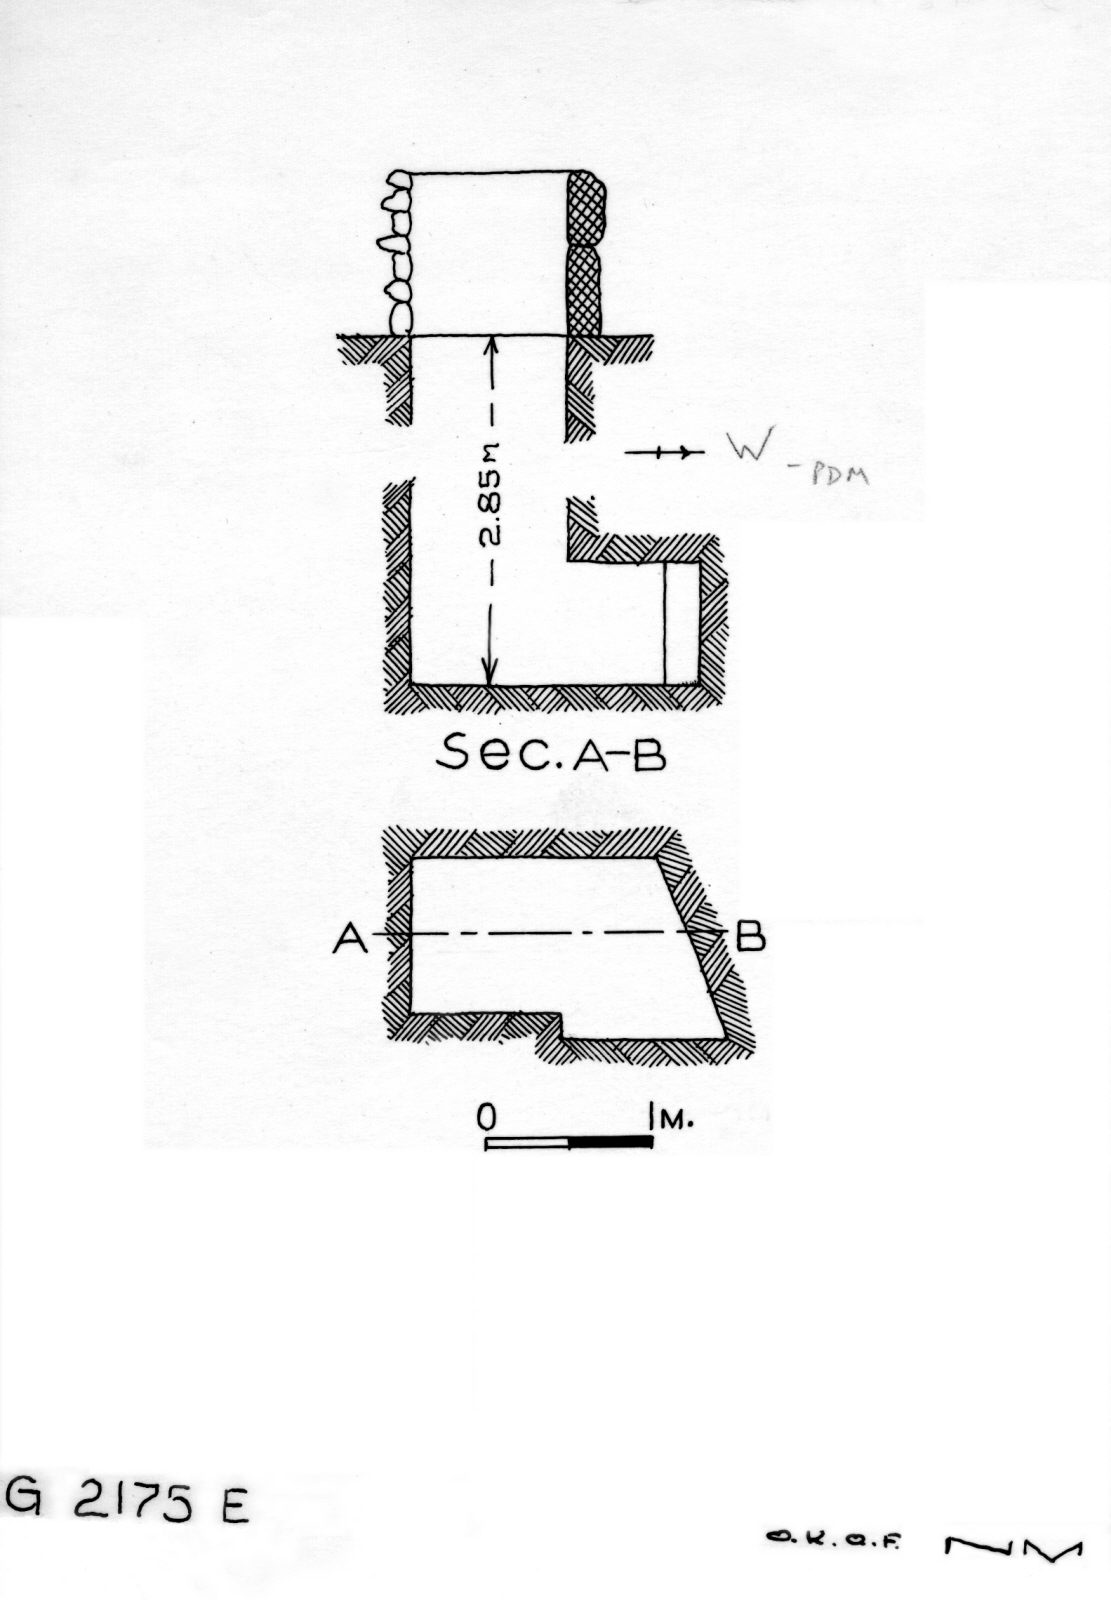 Maps and plans: G 2175, Shaft E